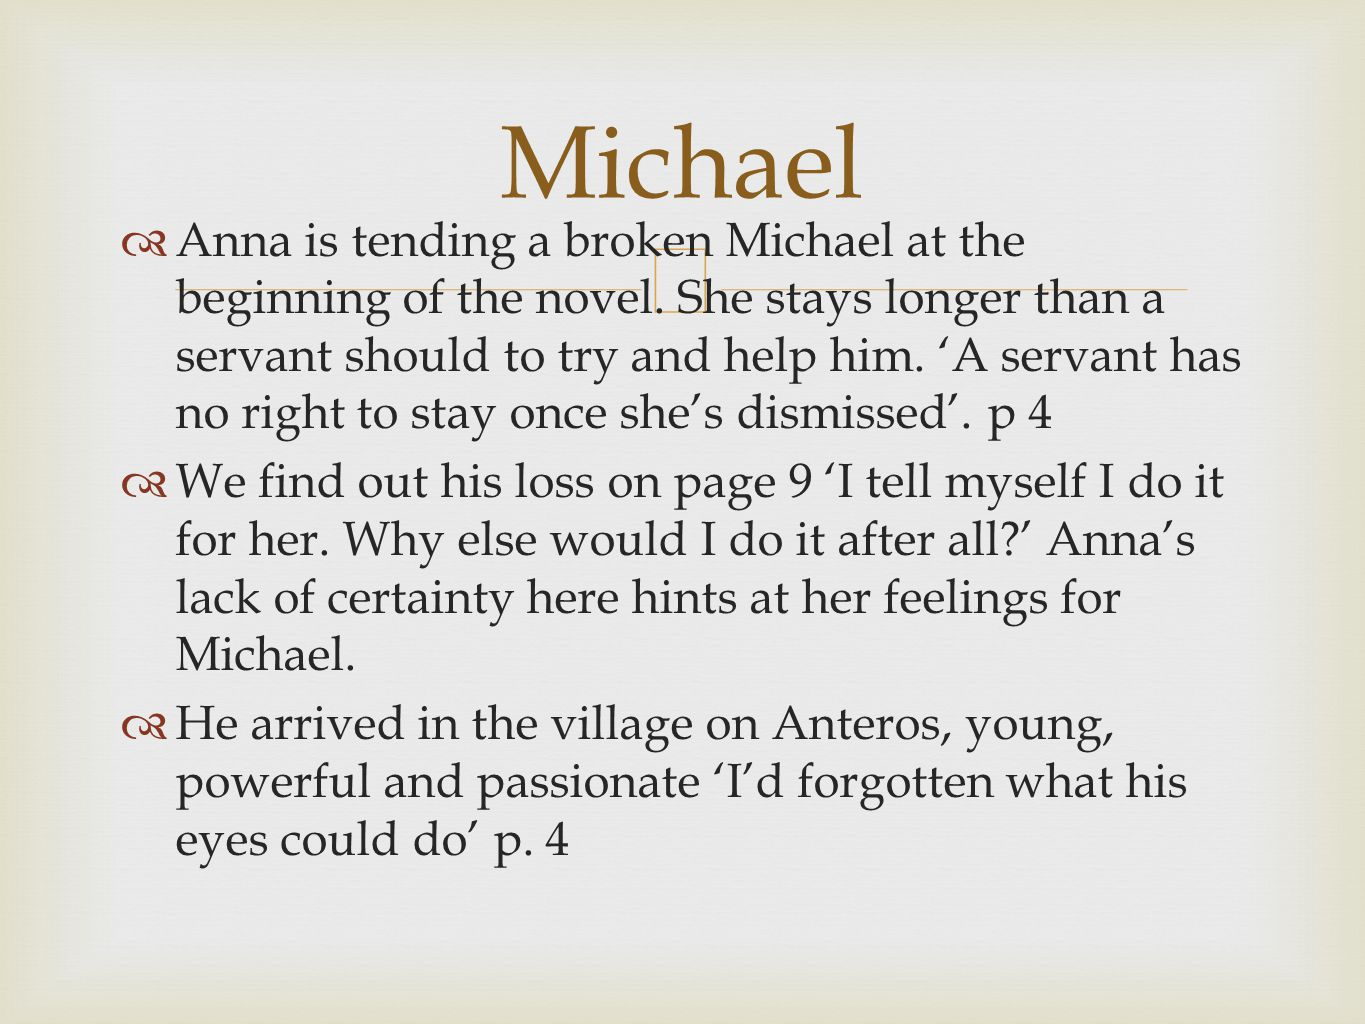 Anna is tending a broken Michael at the beginning of the novel. She stays longer than a servant should to try and help him. A servant has no right to